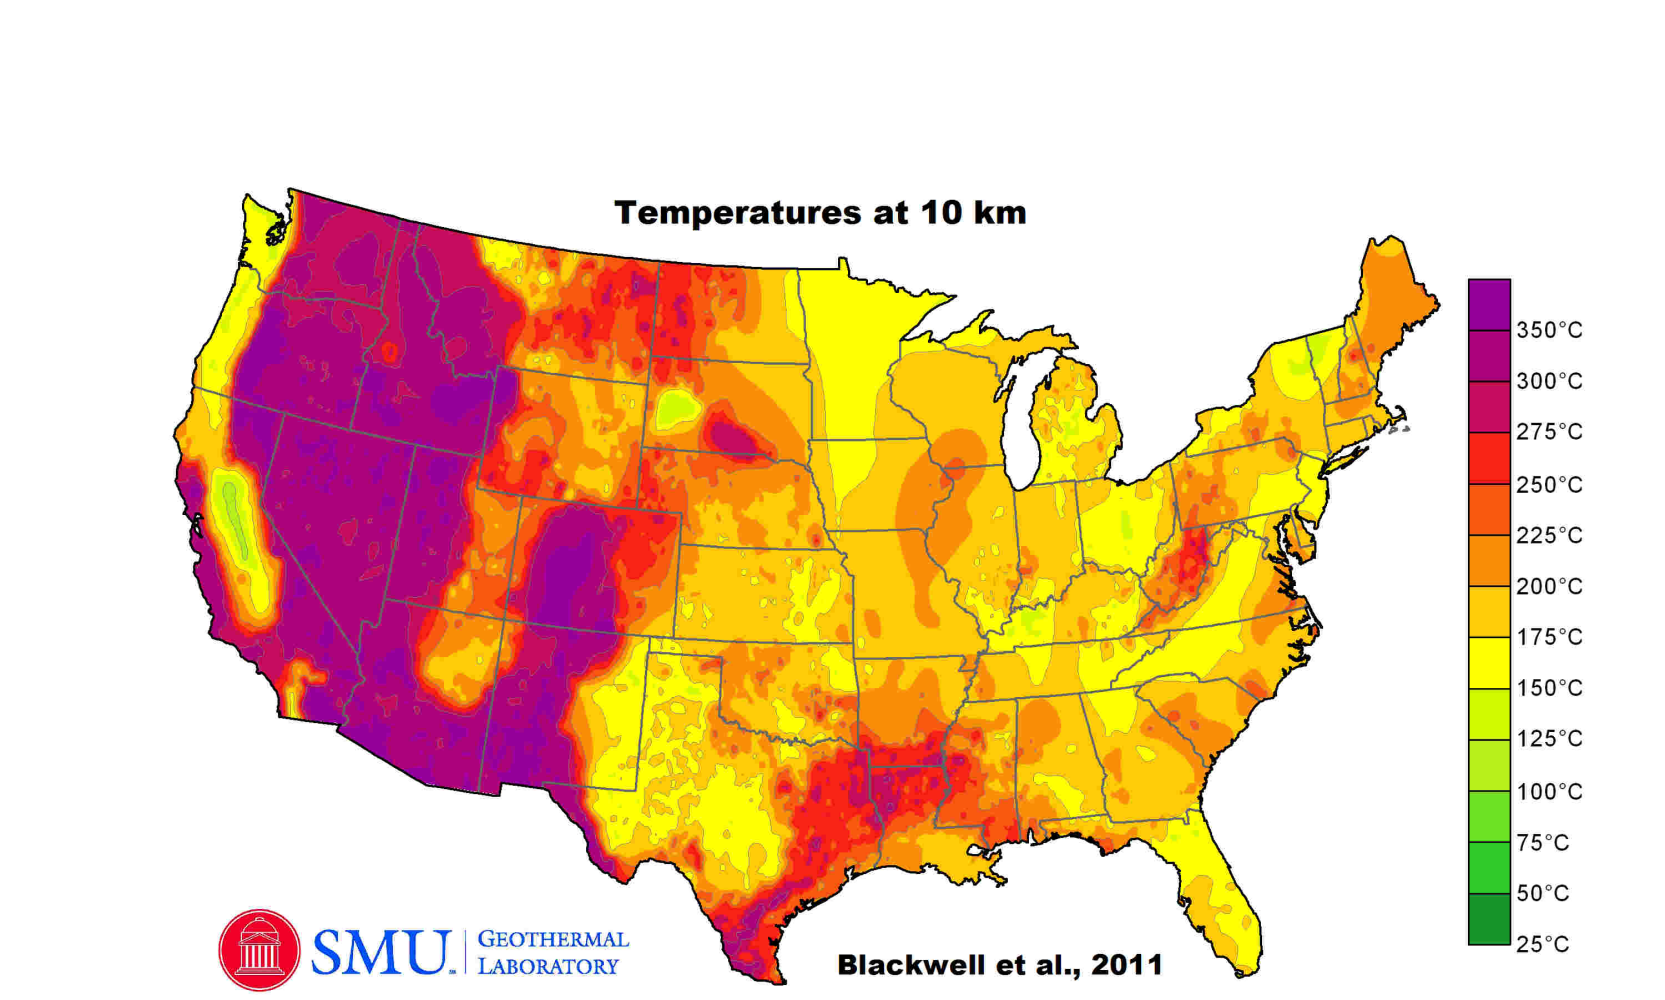 Geothermal Data And Maps Dedman College SMU - Geothermal map of the us